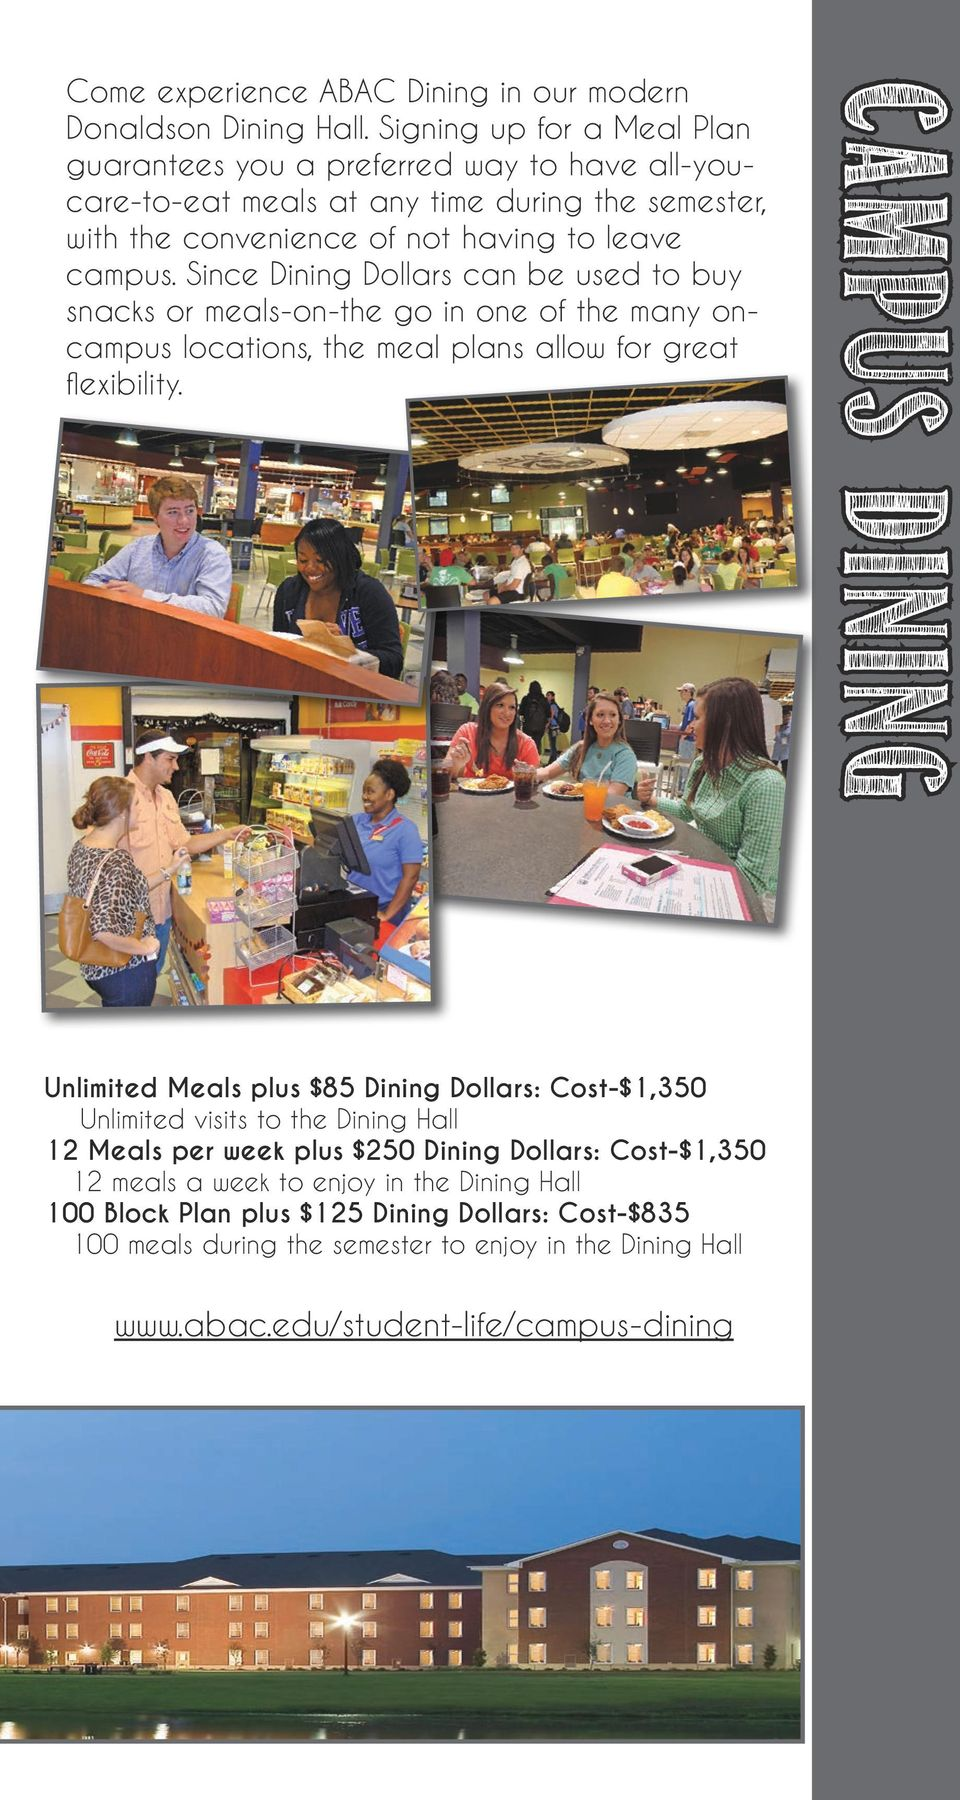 Since Dining Dollars can be used to buy snacks or meals-on-the go in one of the many oncampus locations, the meal plans allow for great flexibility.